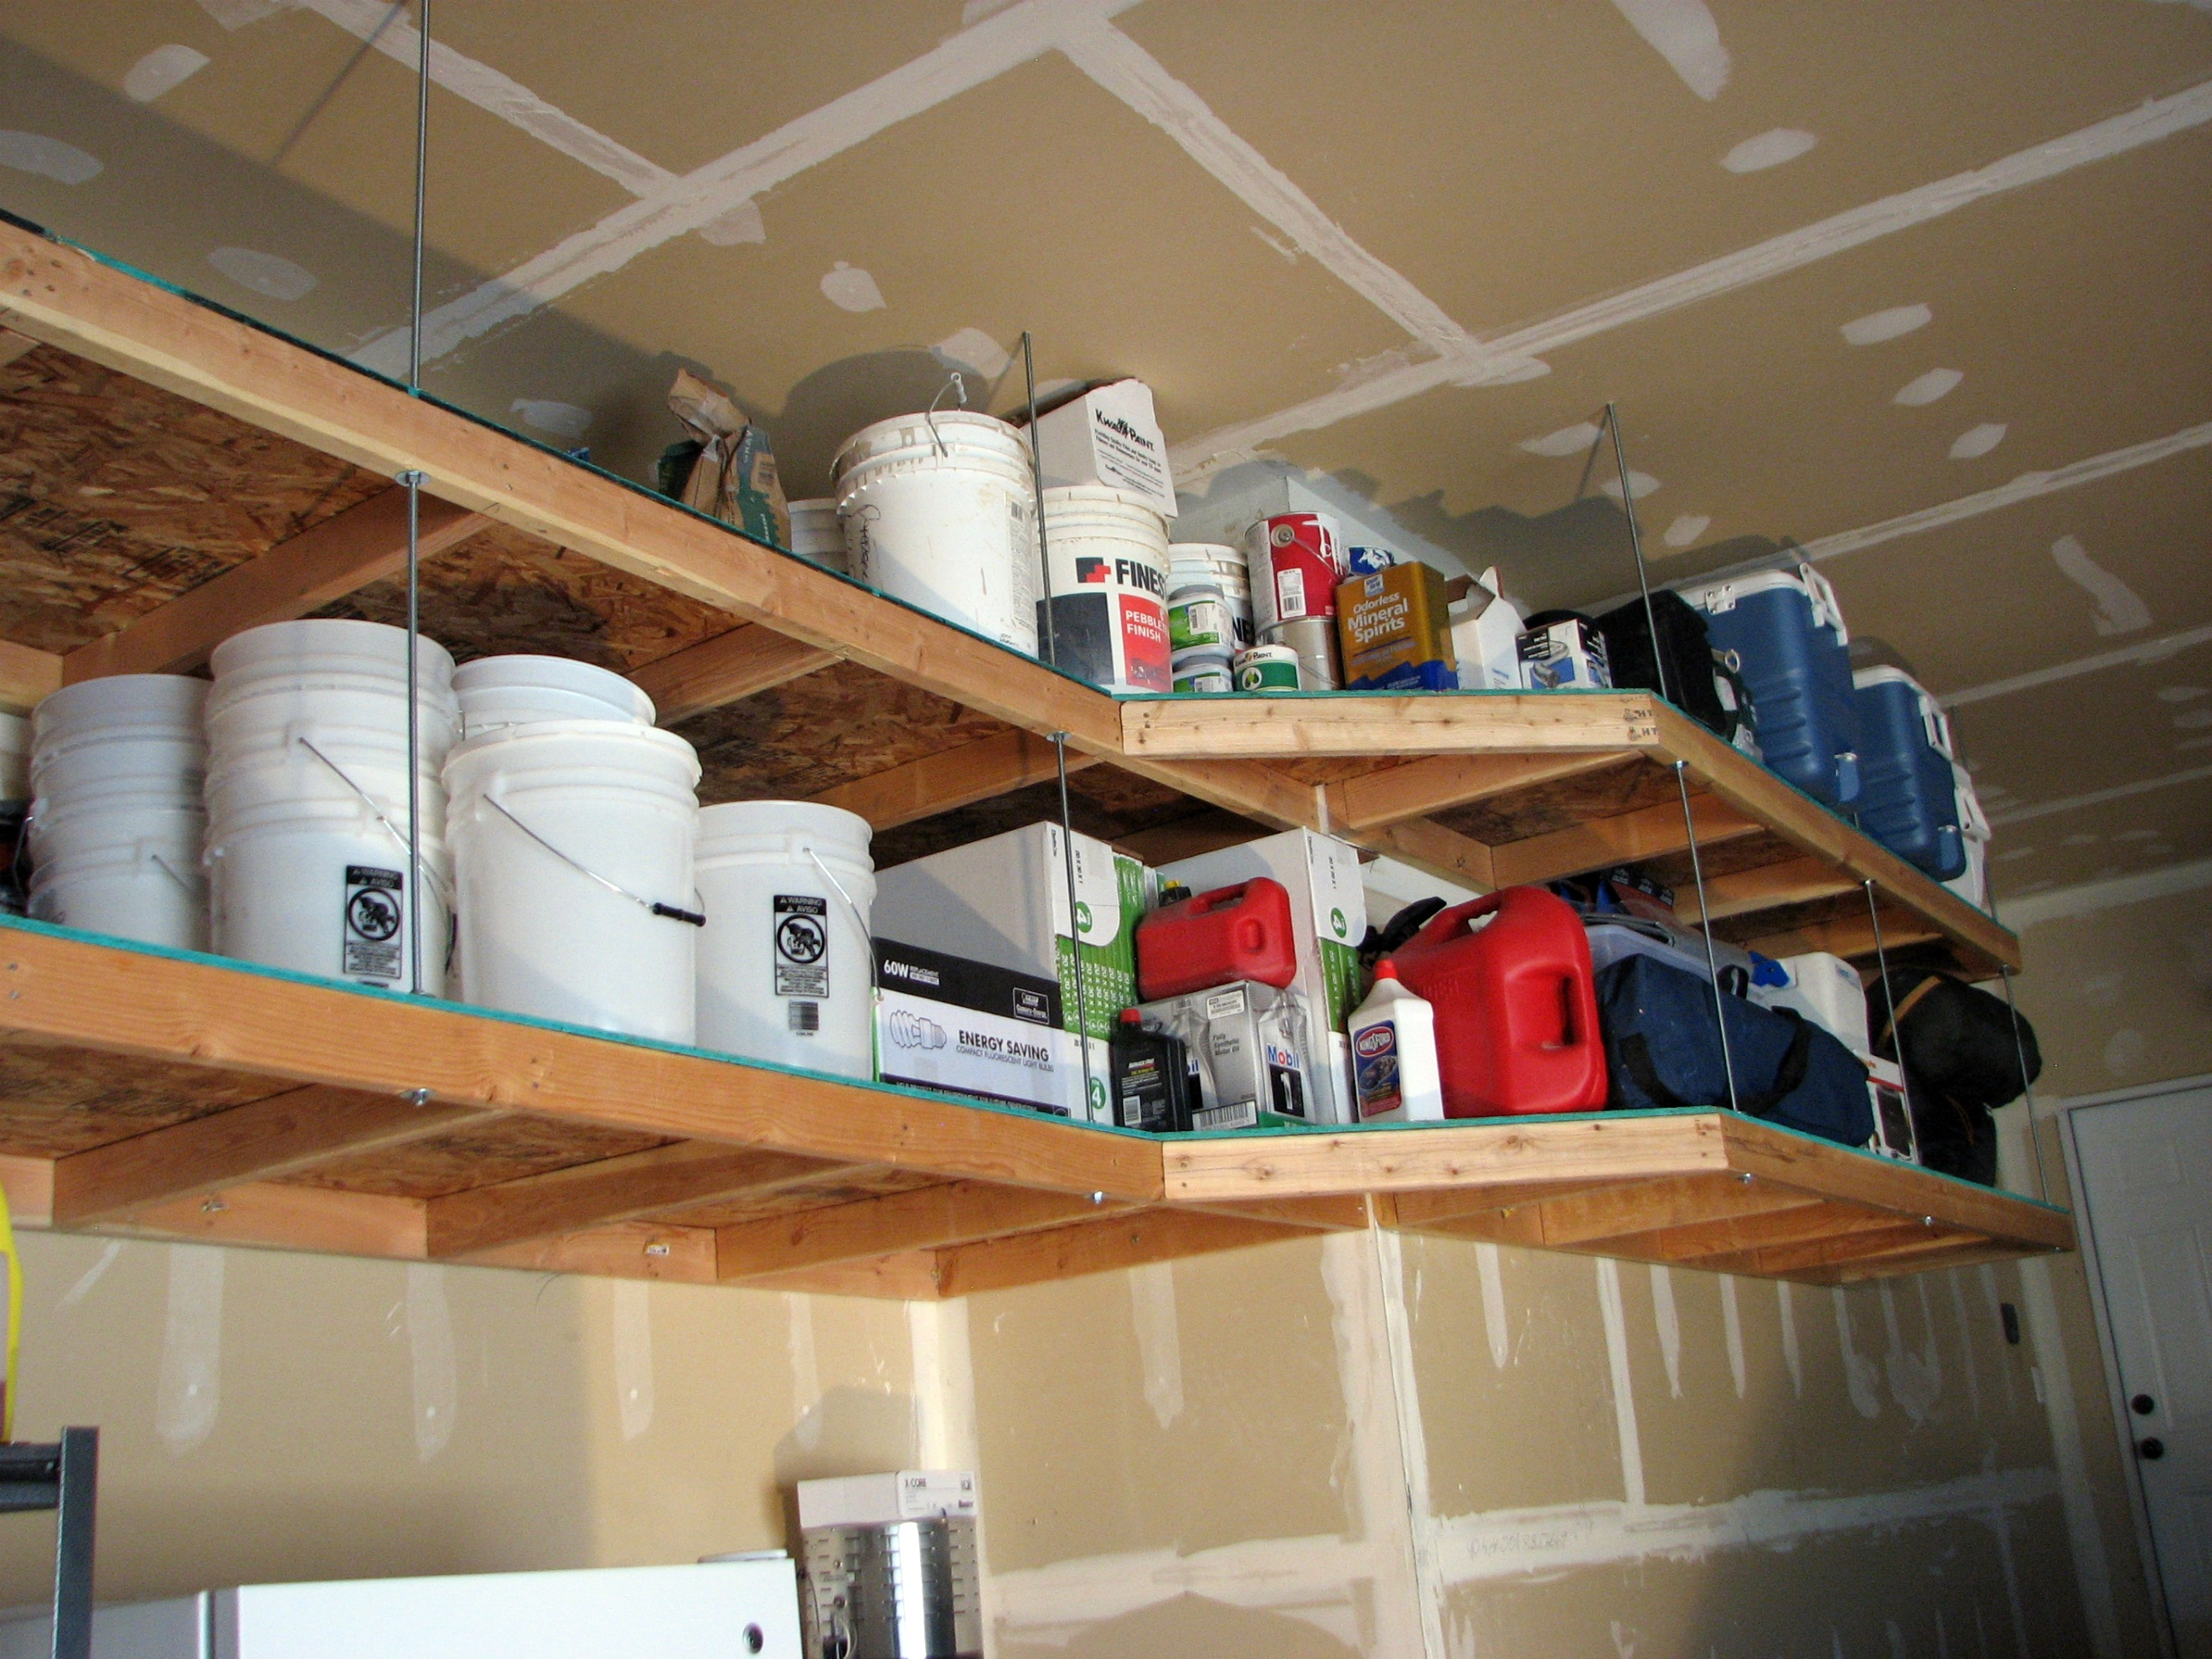 Overhead garage storage with garage ceiling hangers with hanging garage storage systems with garage shelving and storage